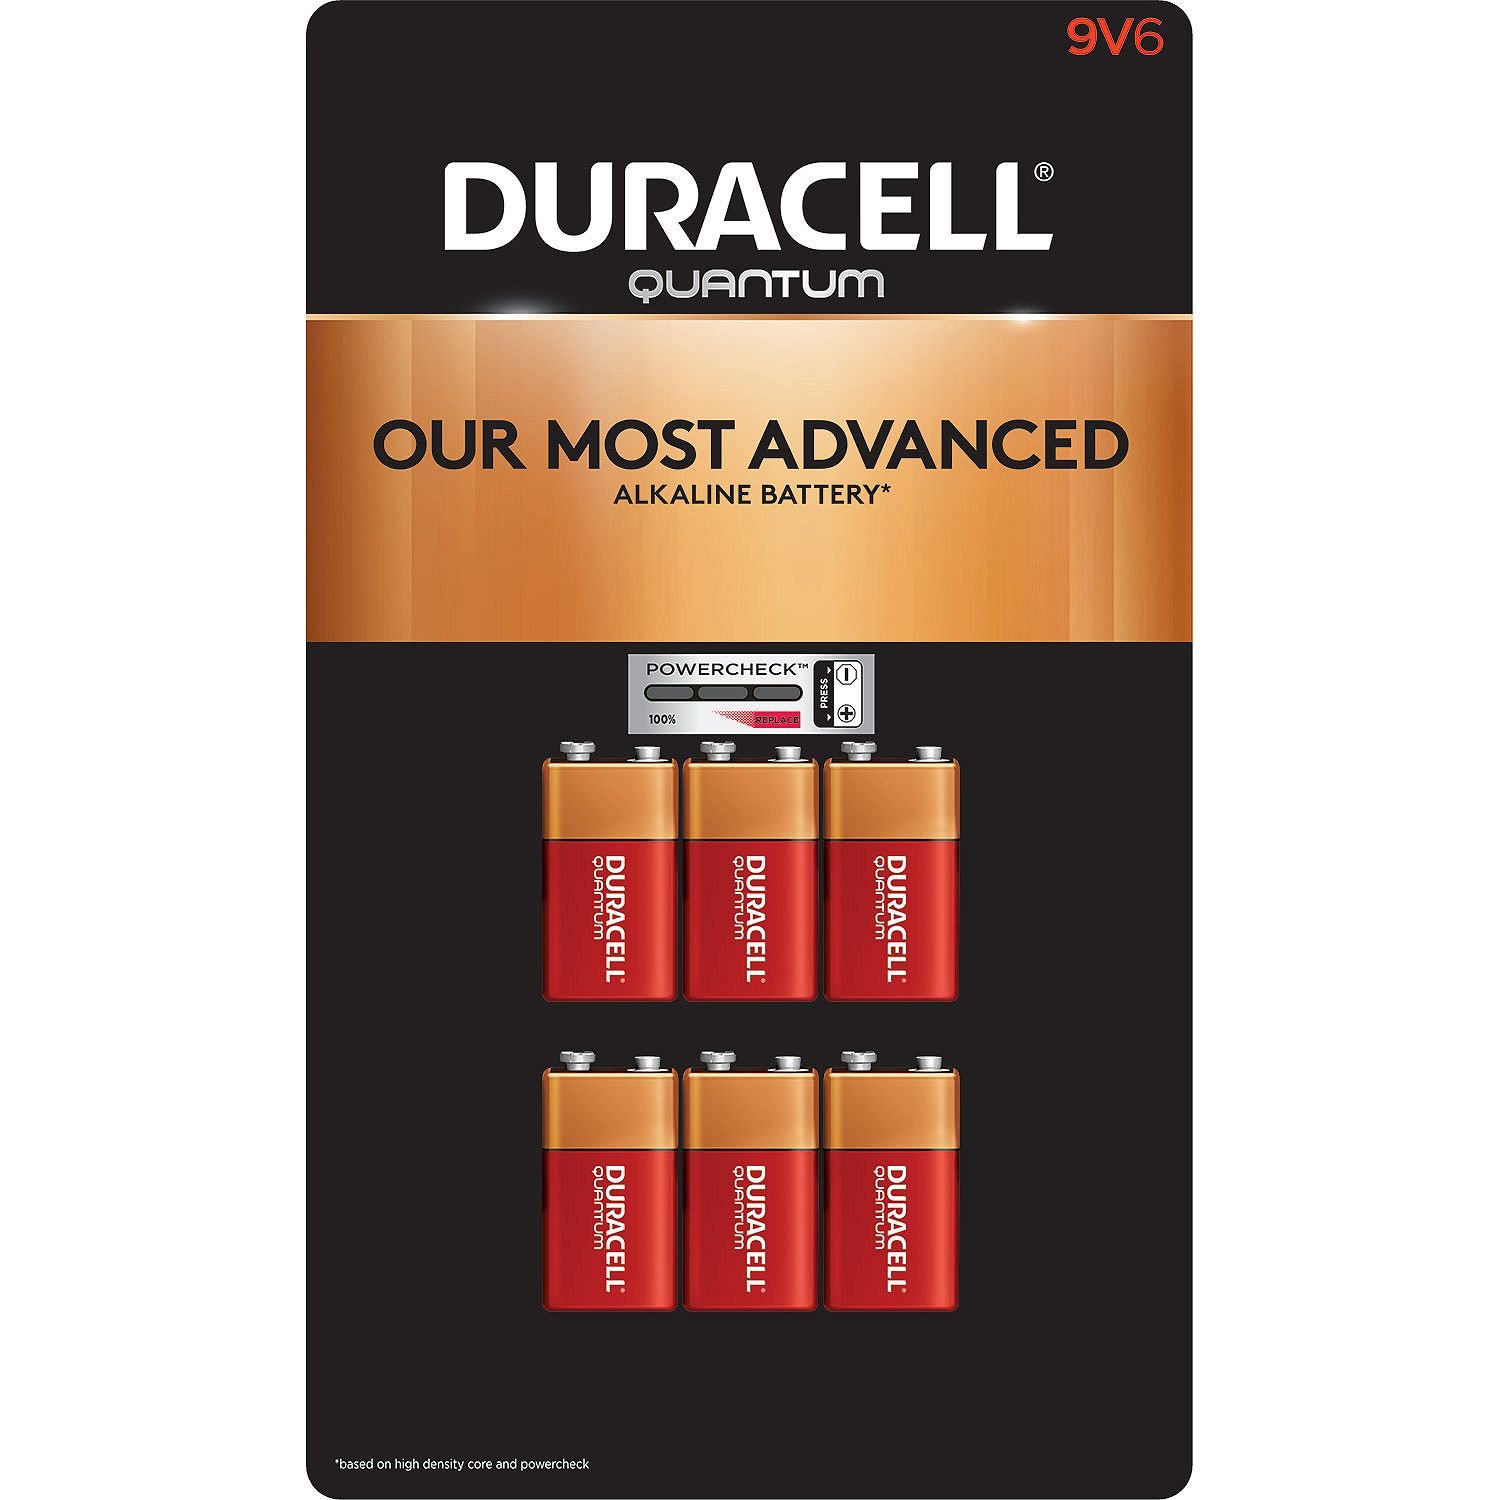 Duracell Quantum 9V Alkaline Batteries 6ct. Pk, Packaging May Vary by Duracell